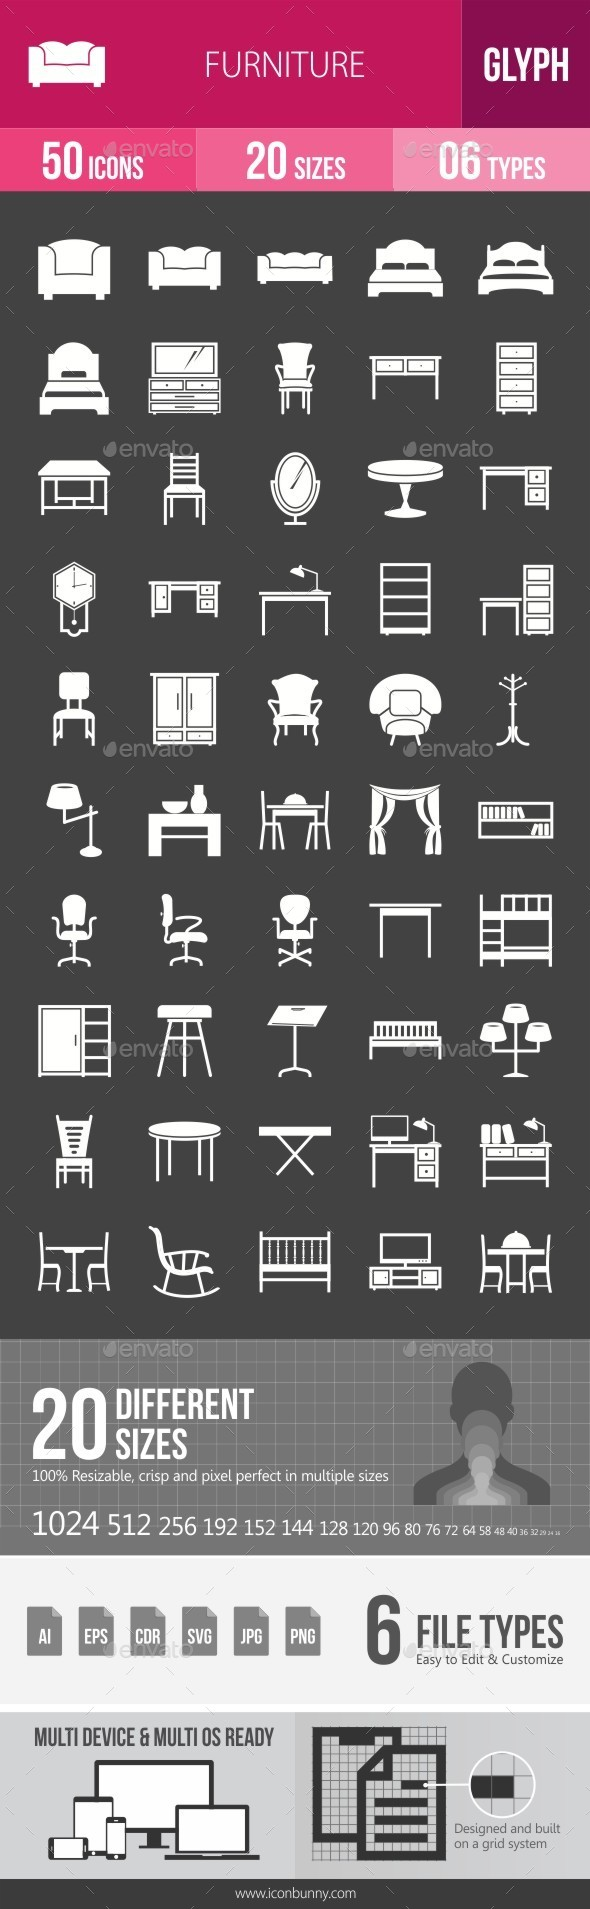 Furniture Glyph Inverted Icons - Icons